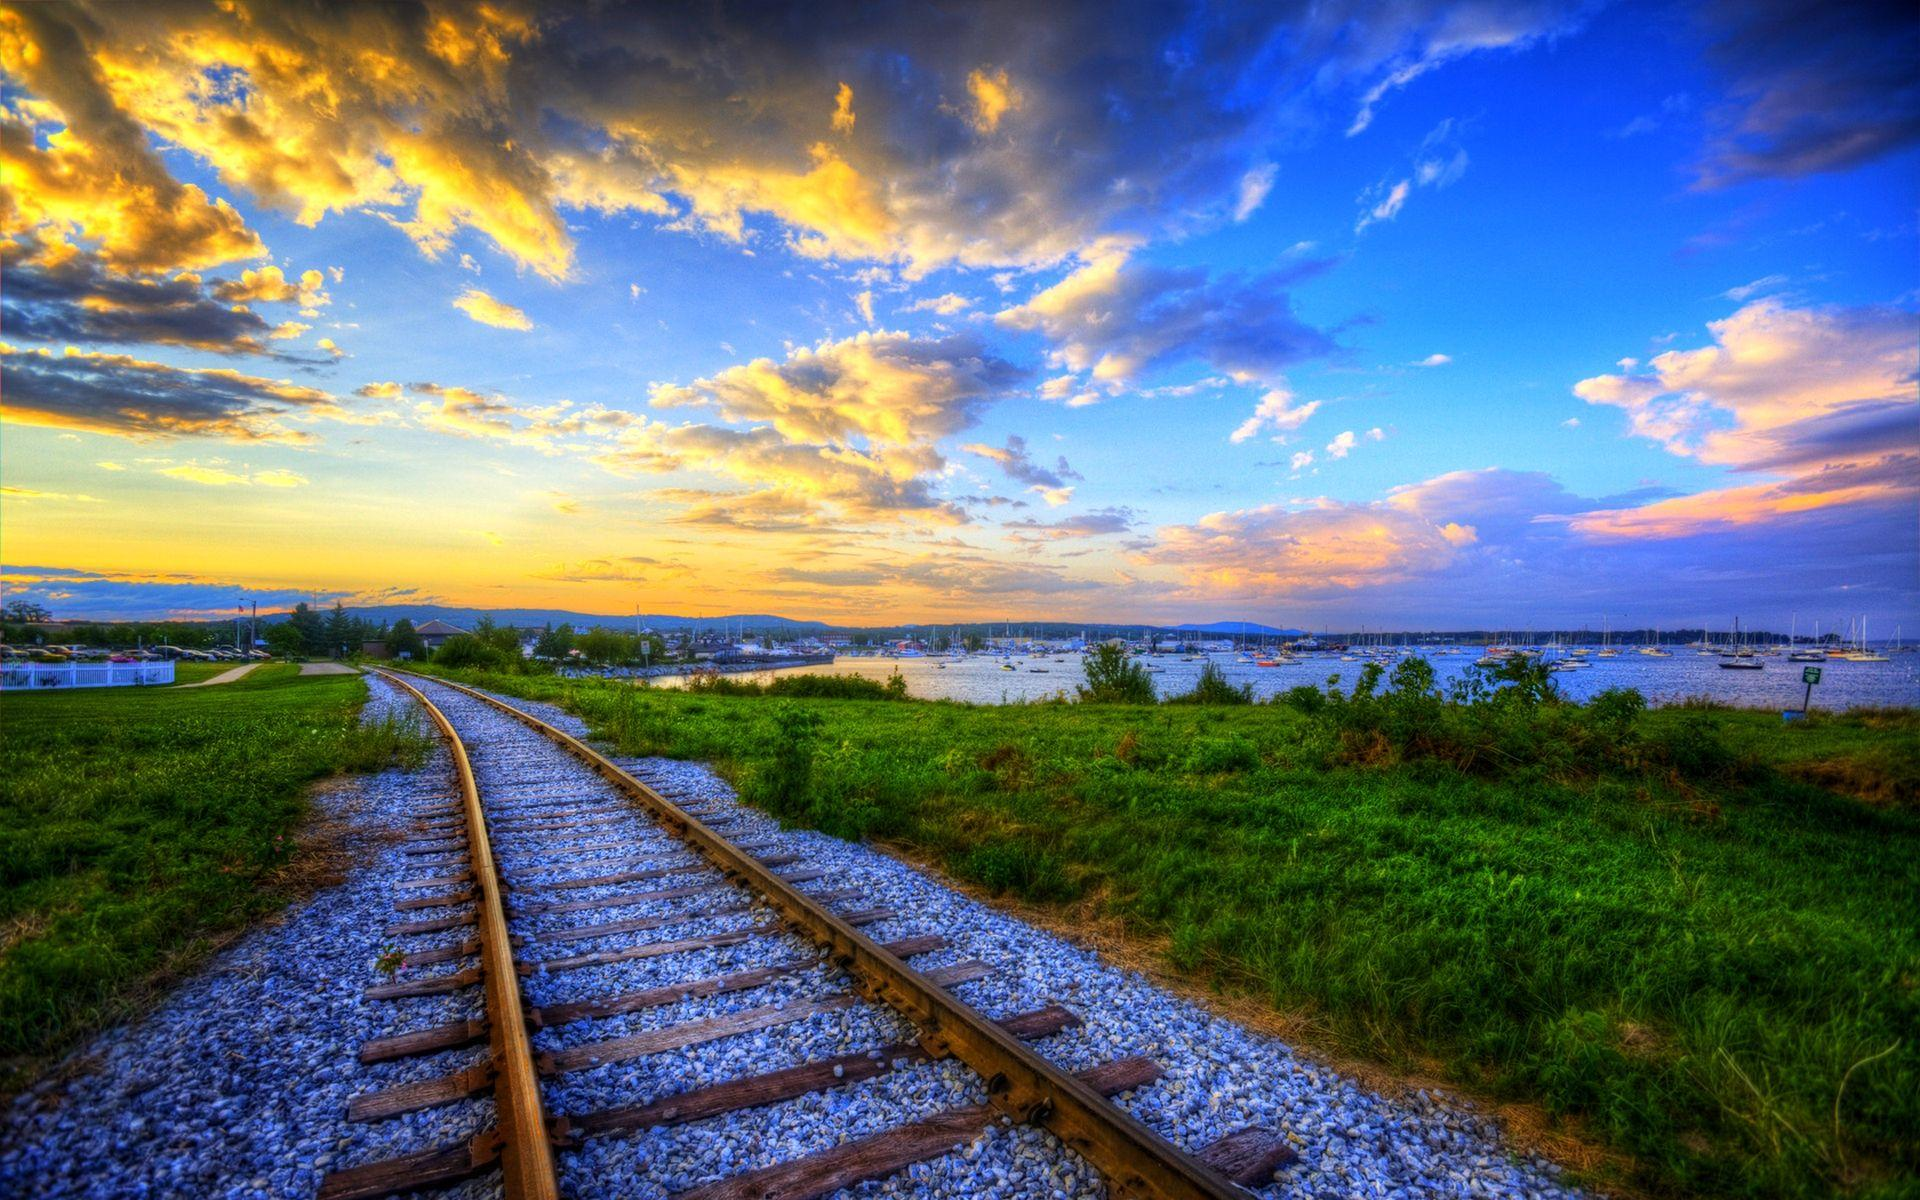 Train Track Wallpapers HD 37974 1920x1200 px ~ HDWallSource